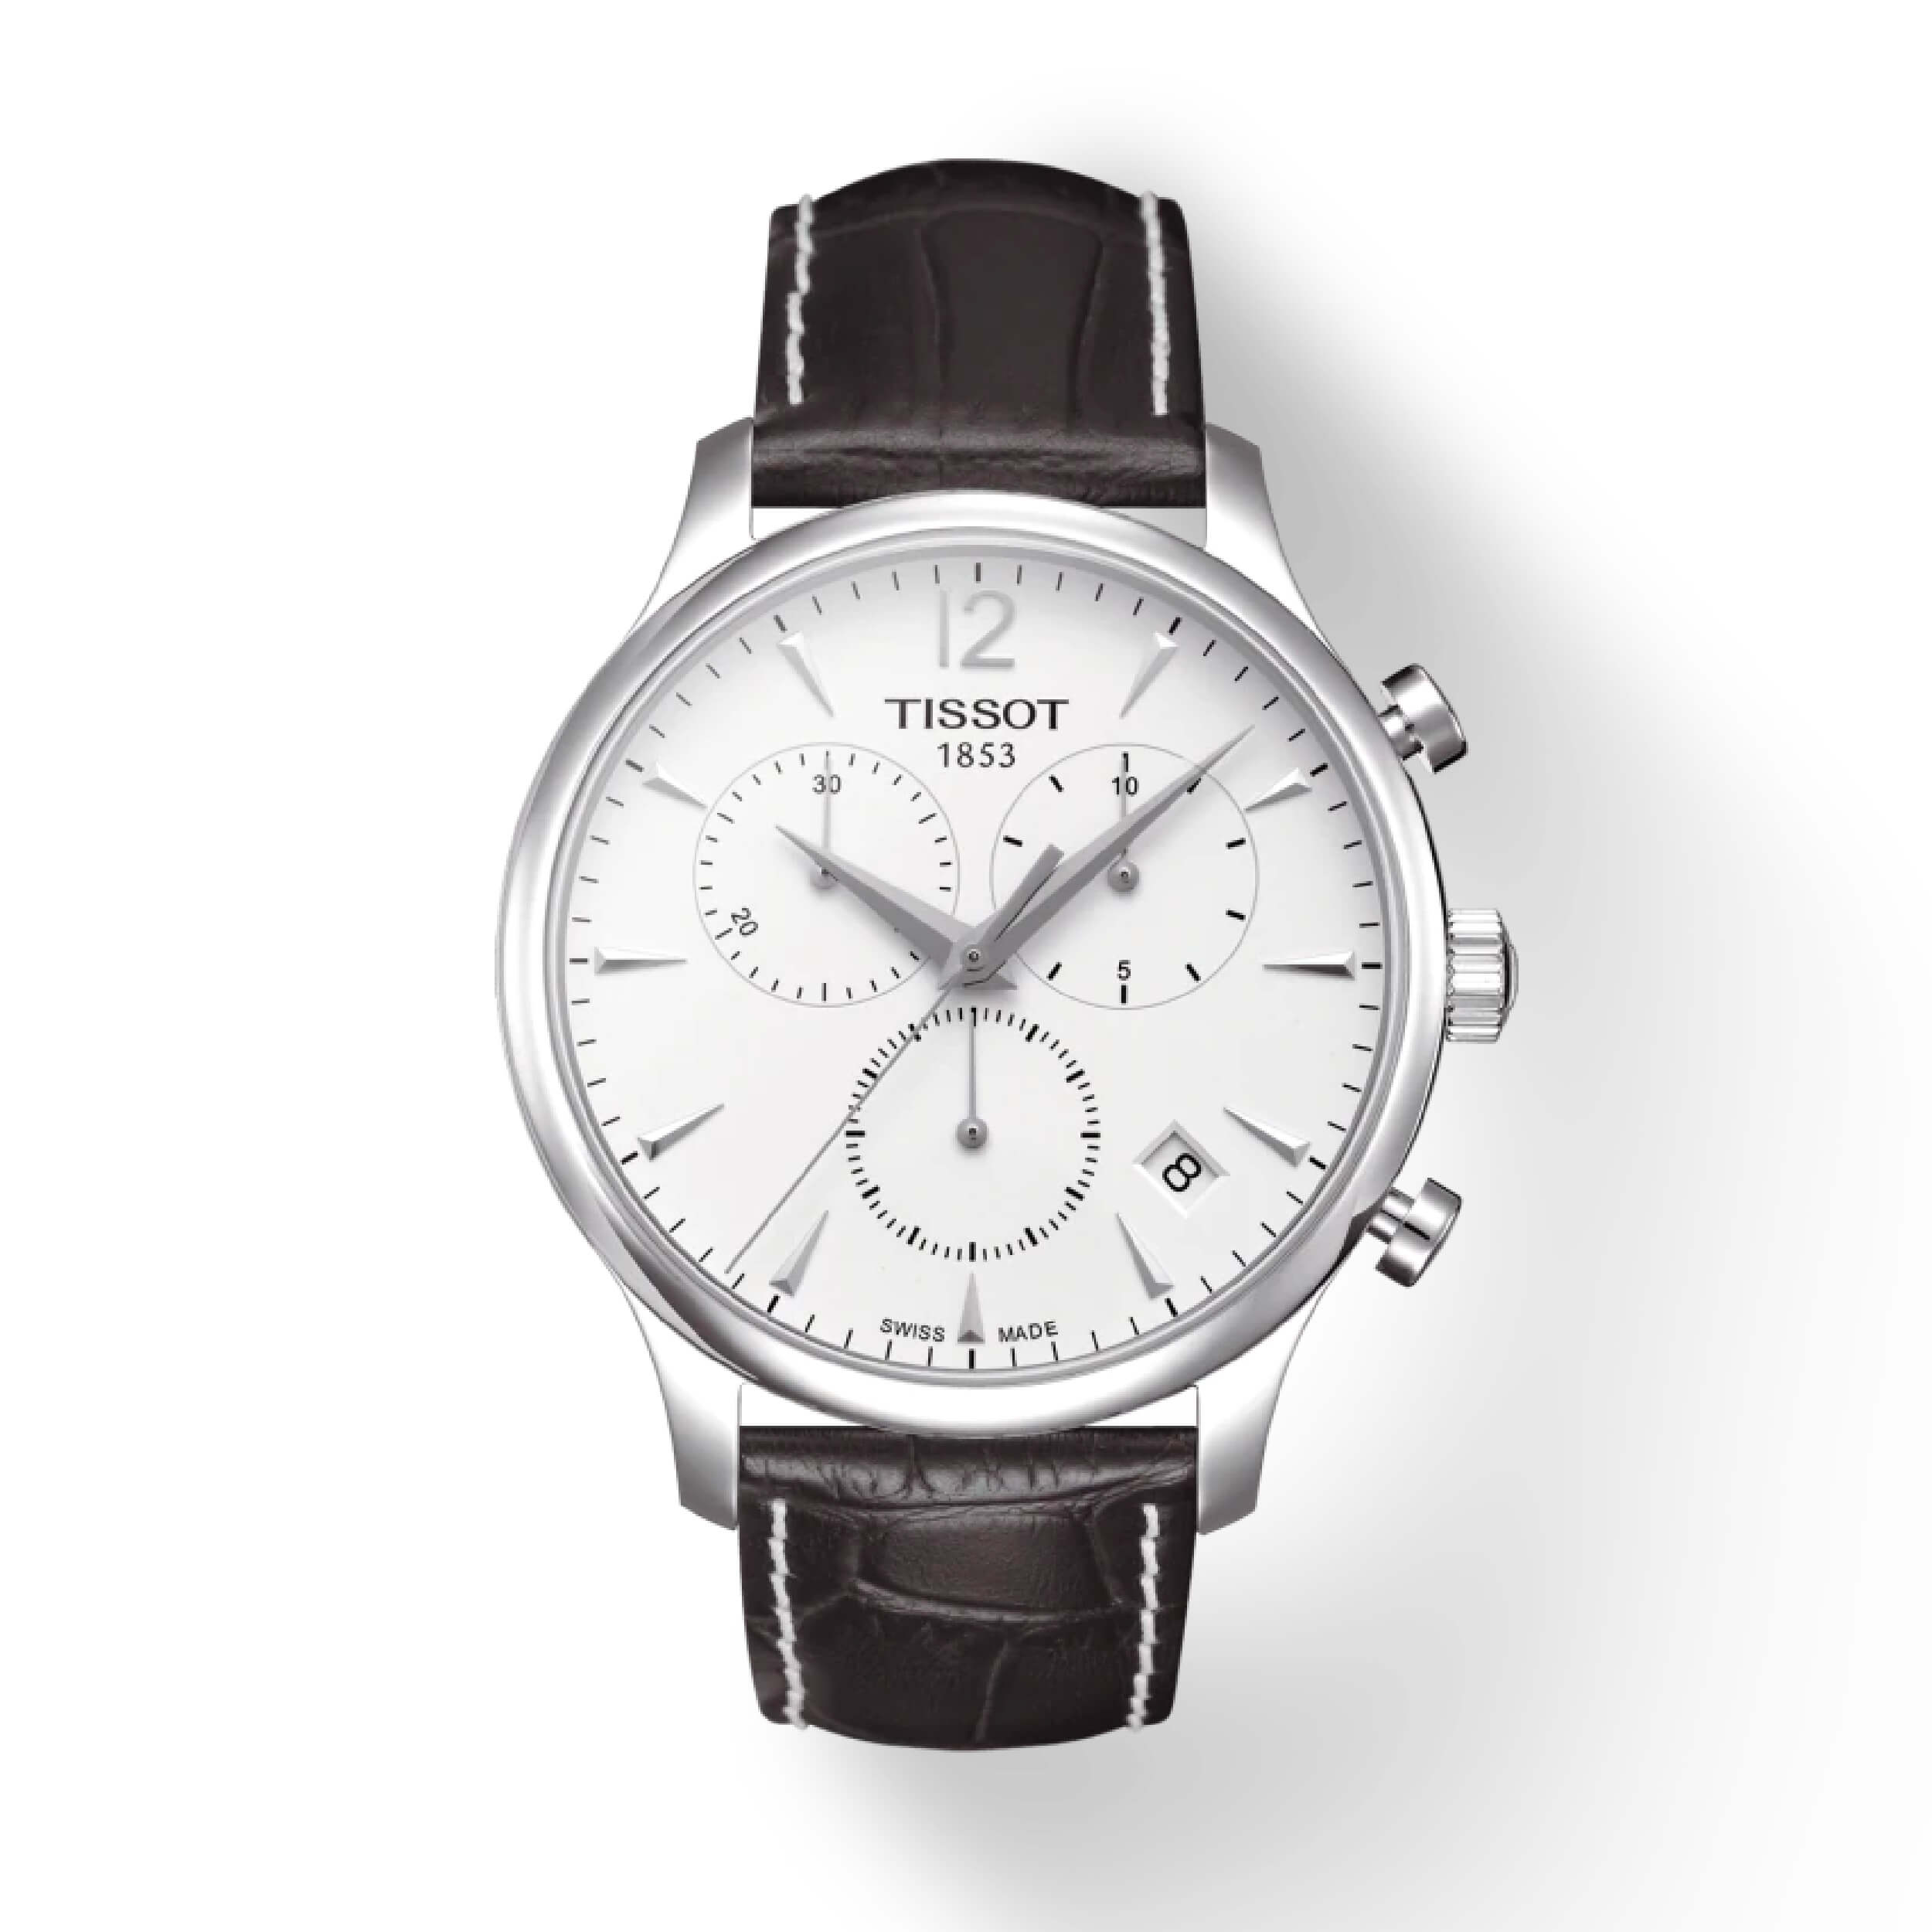 Tissot Traditional Chronograph | Best Chronograph Watch Under £500